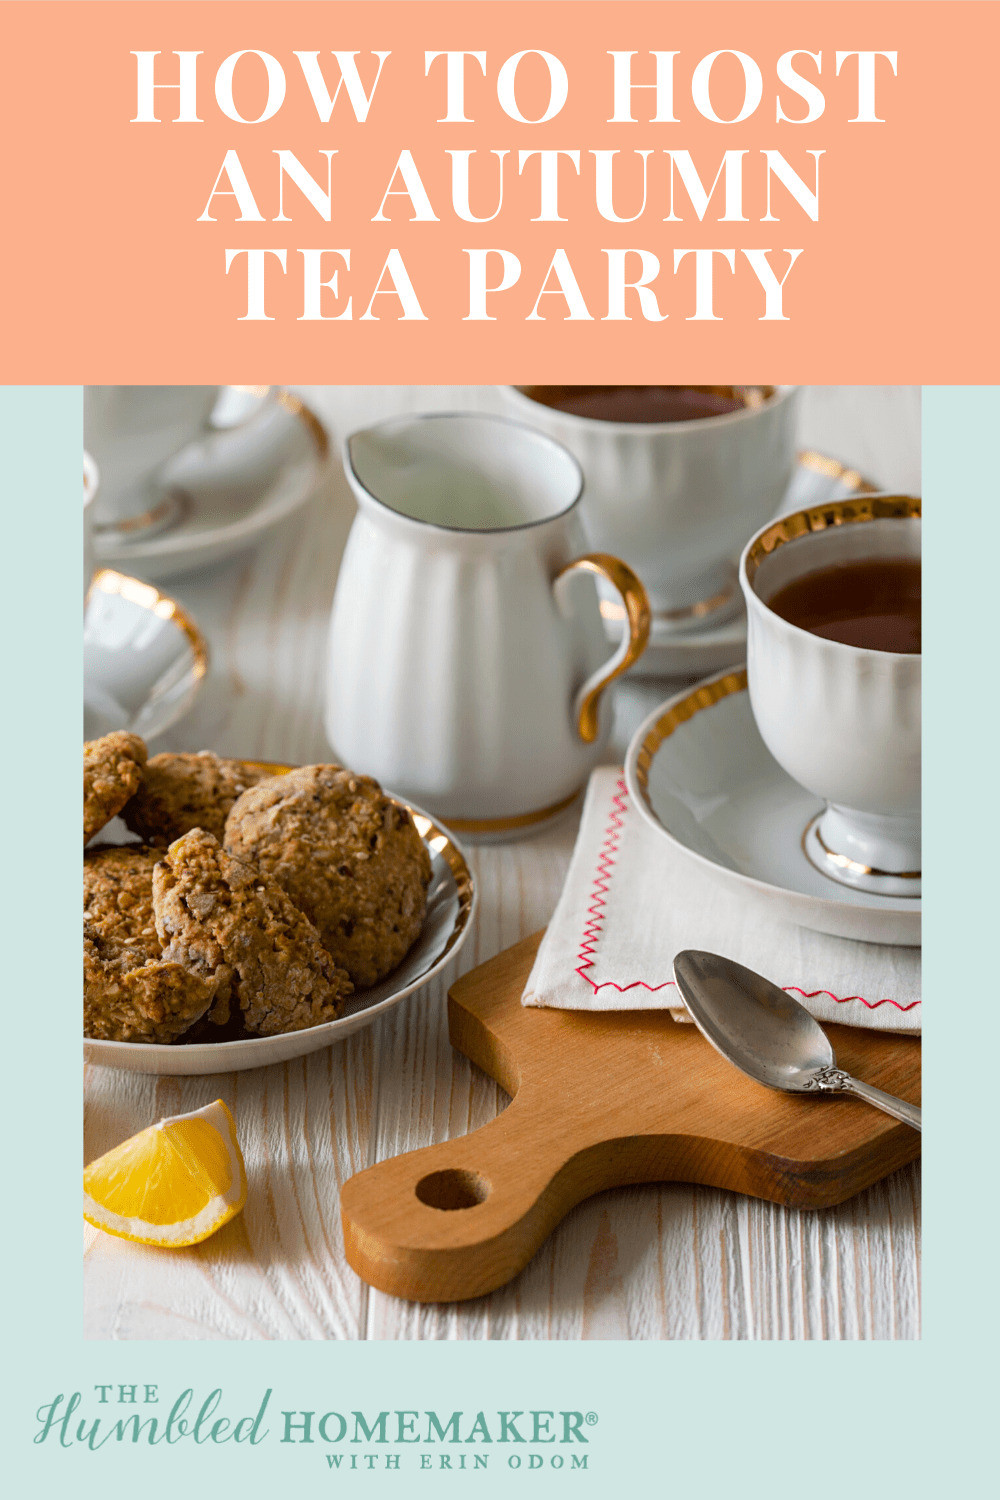 Host an autumn tea party with these fall tea party menu ideas, pretty place settings, and a recipe for gluten-free apple cake. It's tea time!